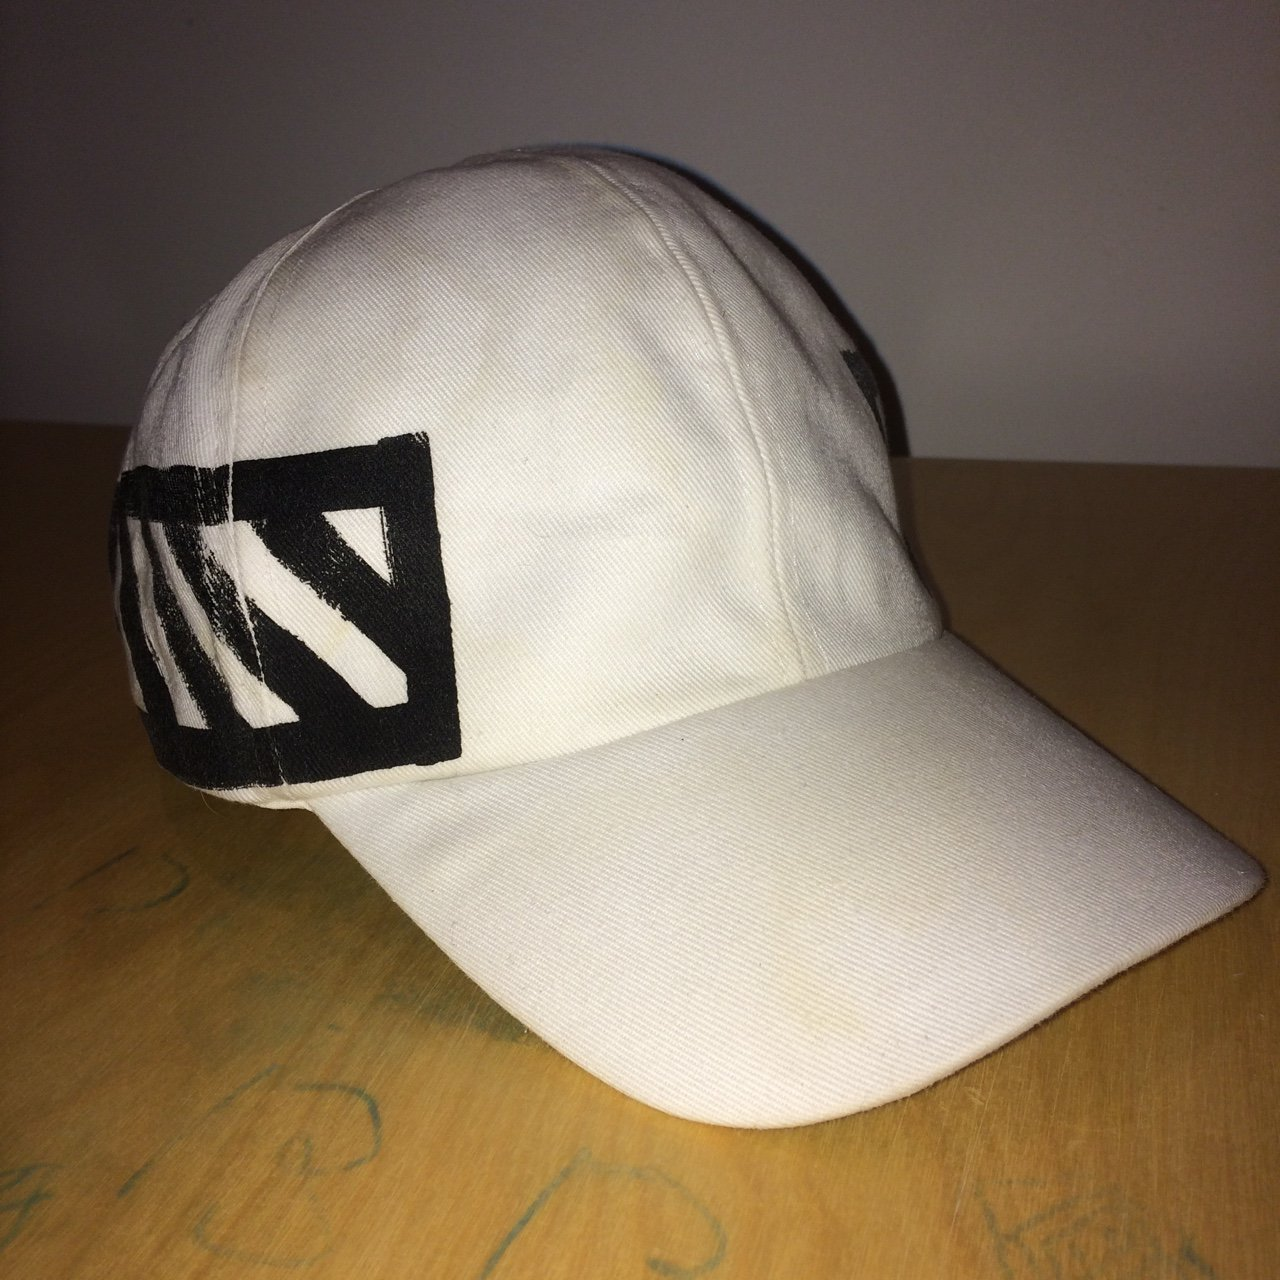 d3c9368bc45 Off-white c o Virgil Abloh White dad cap hat 8.5 10 - a few - Depop